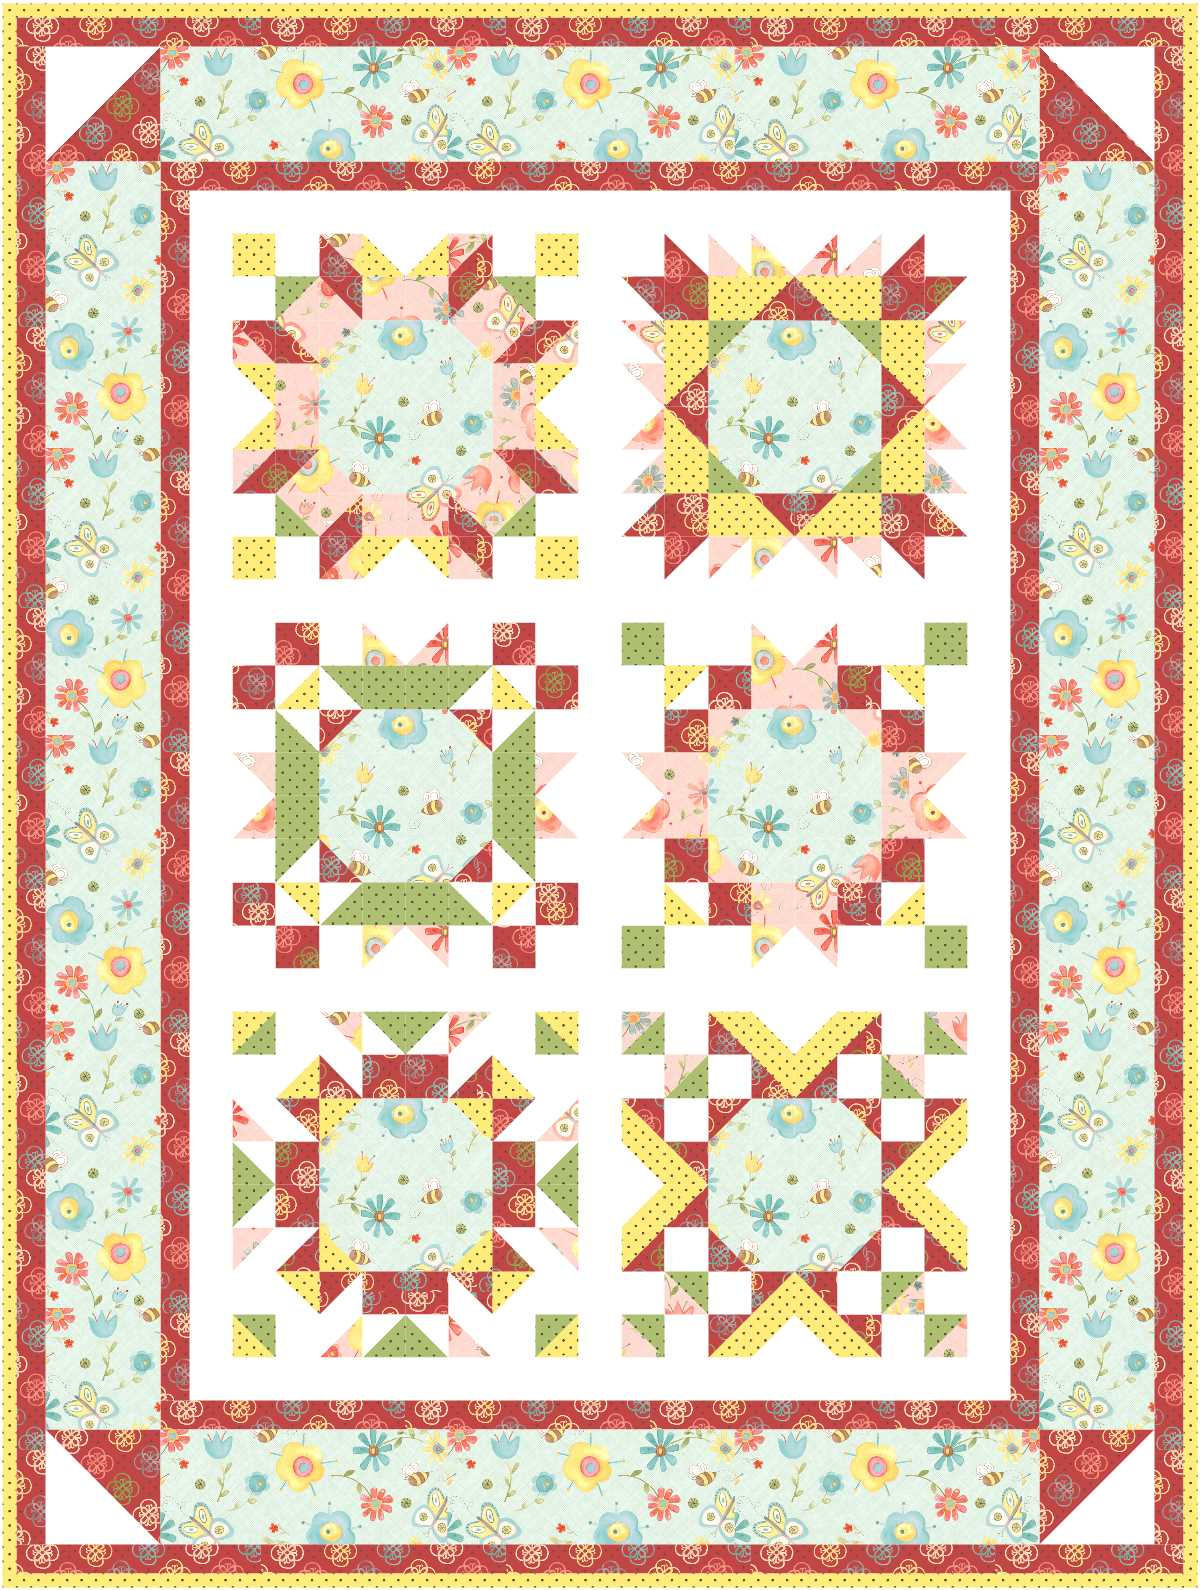 Some Fabric Ideas for the Block Of The Month